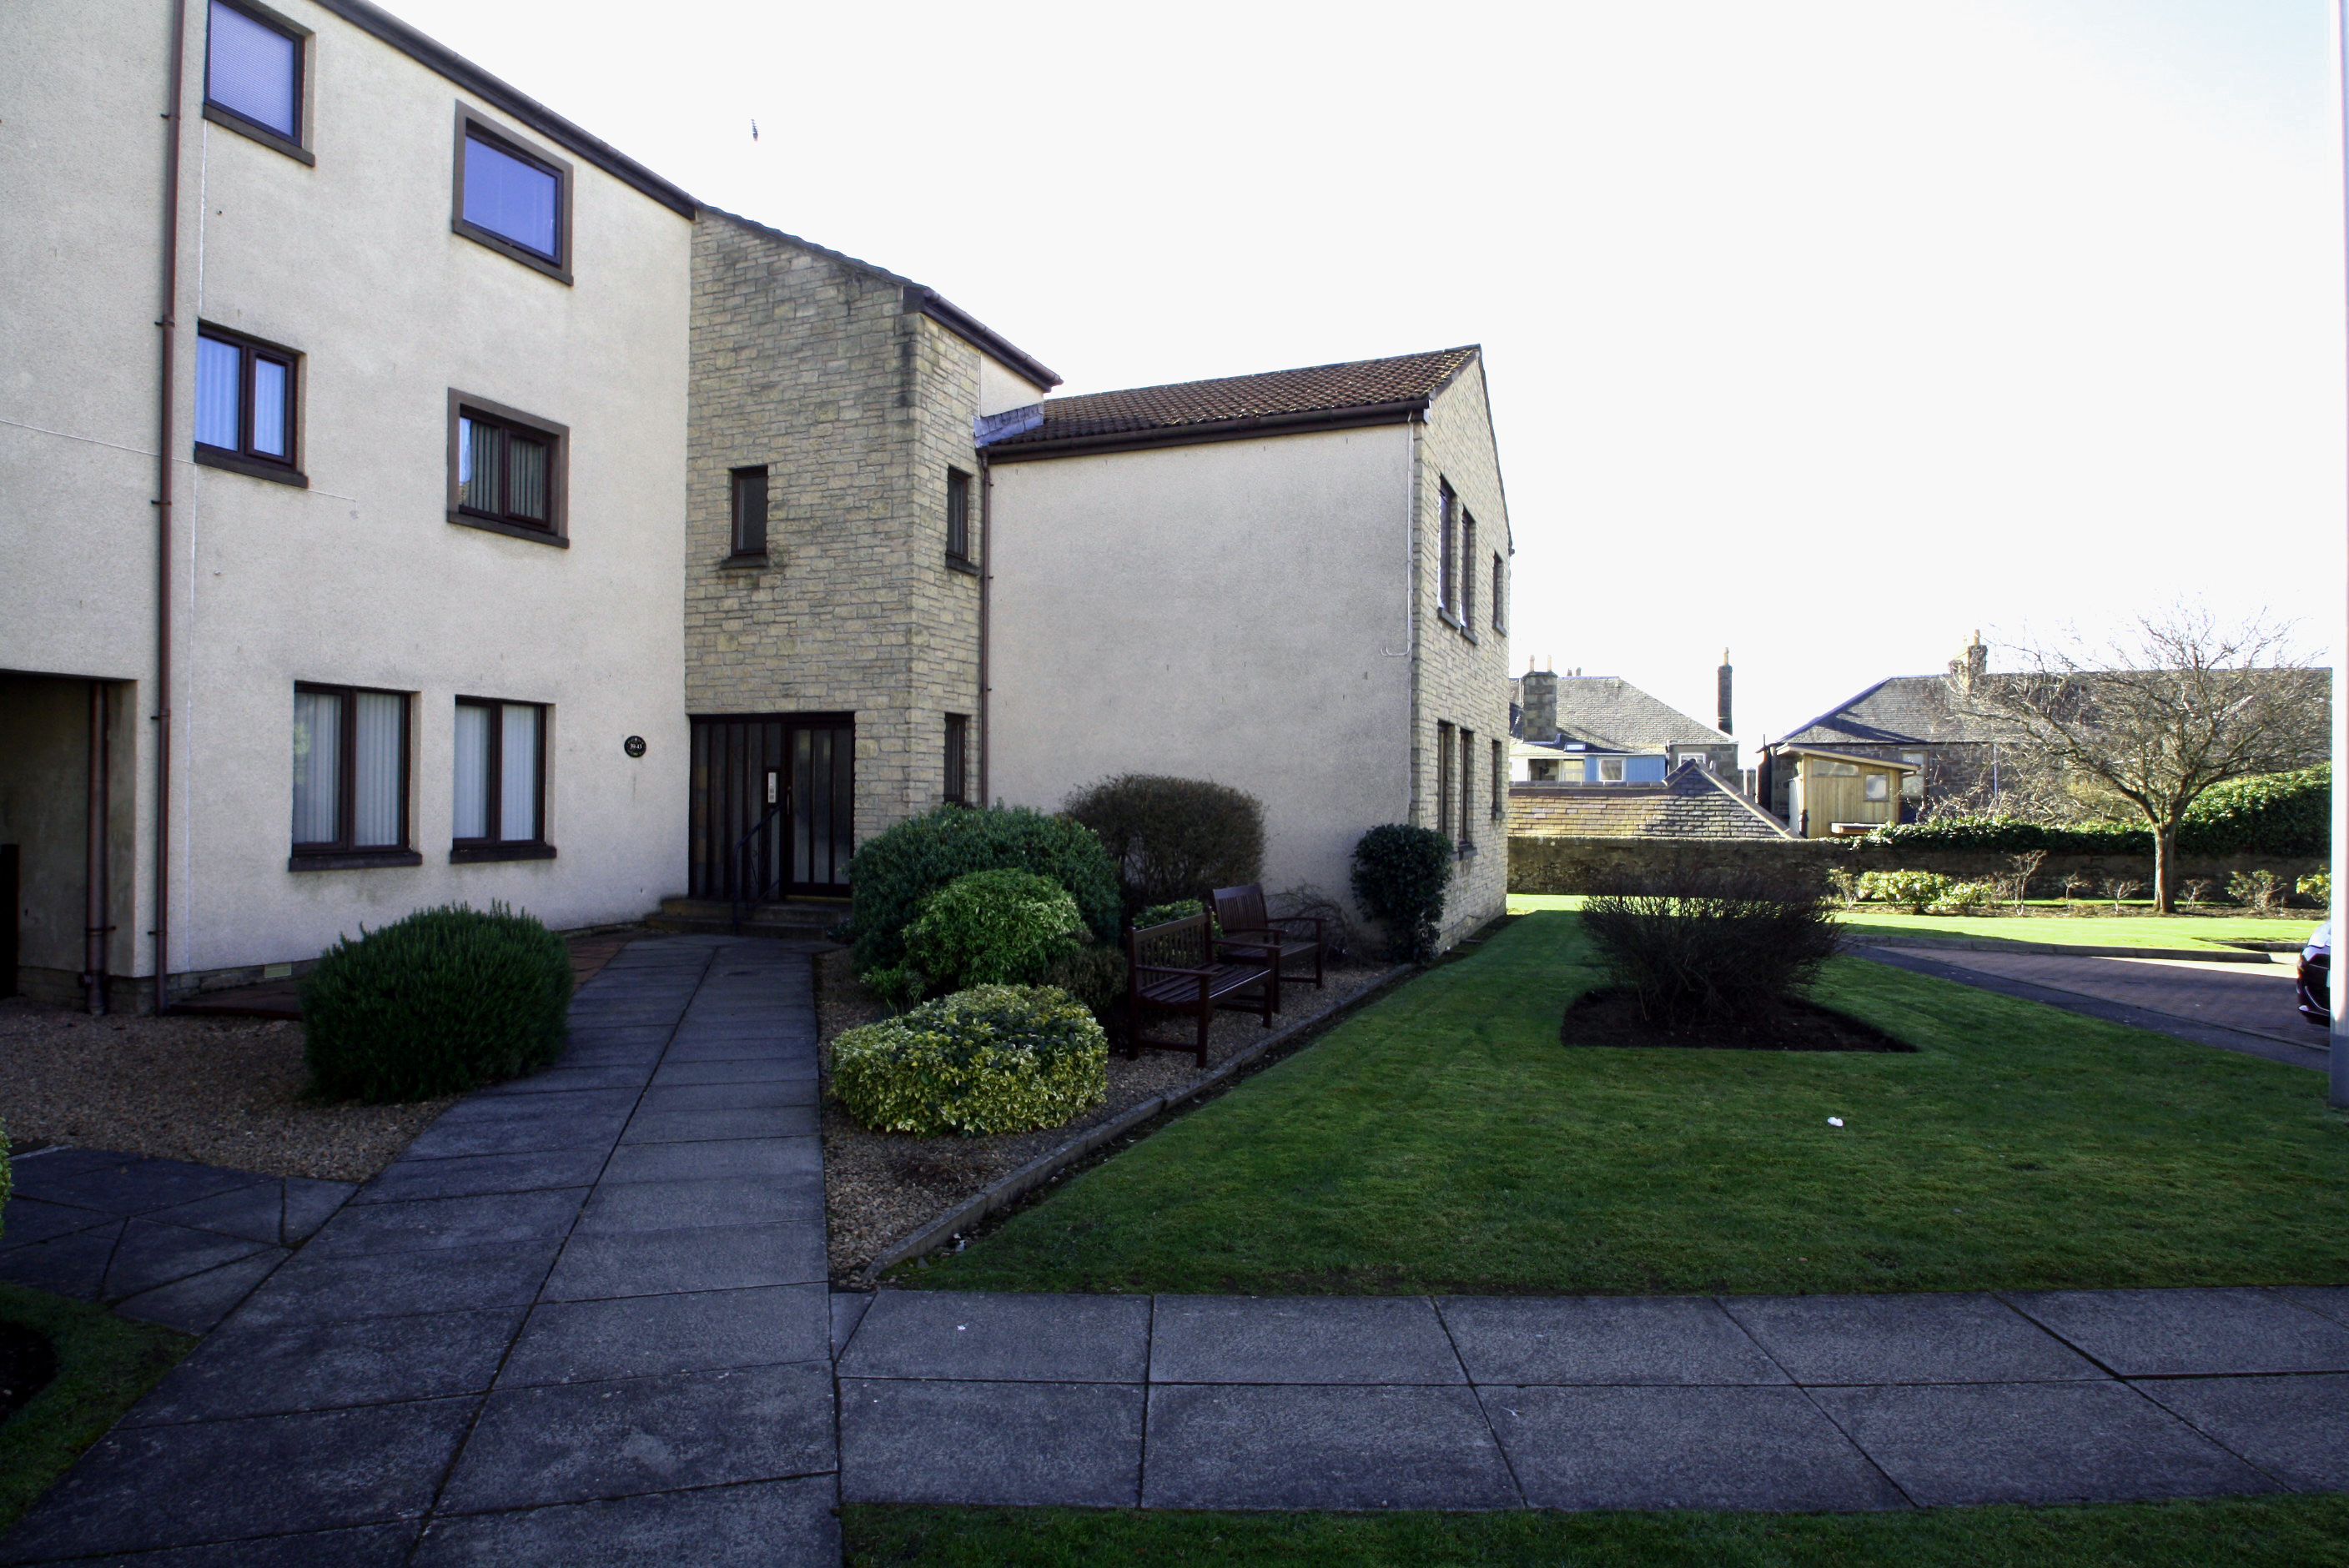 39 Cross Street, Heriot Gate, Broughty Ferry, Dundee, DD5 2DY